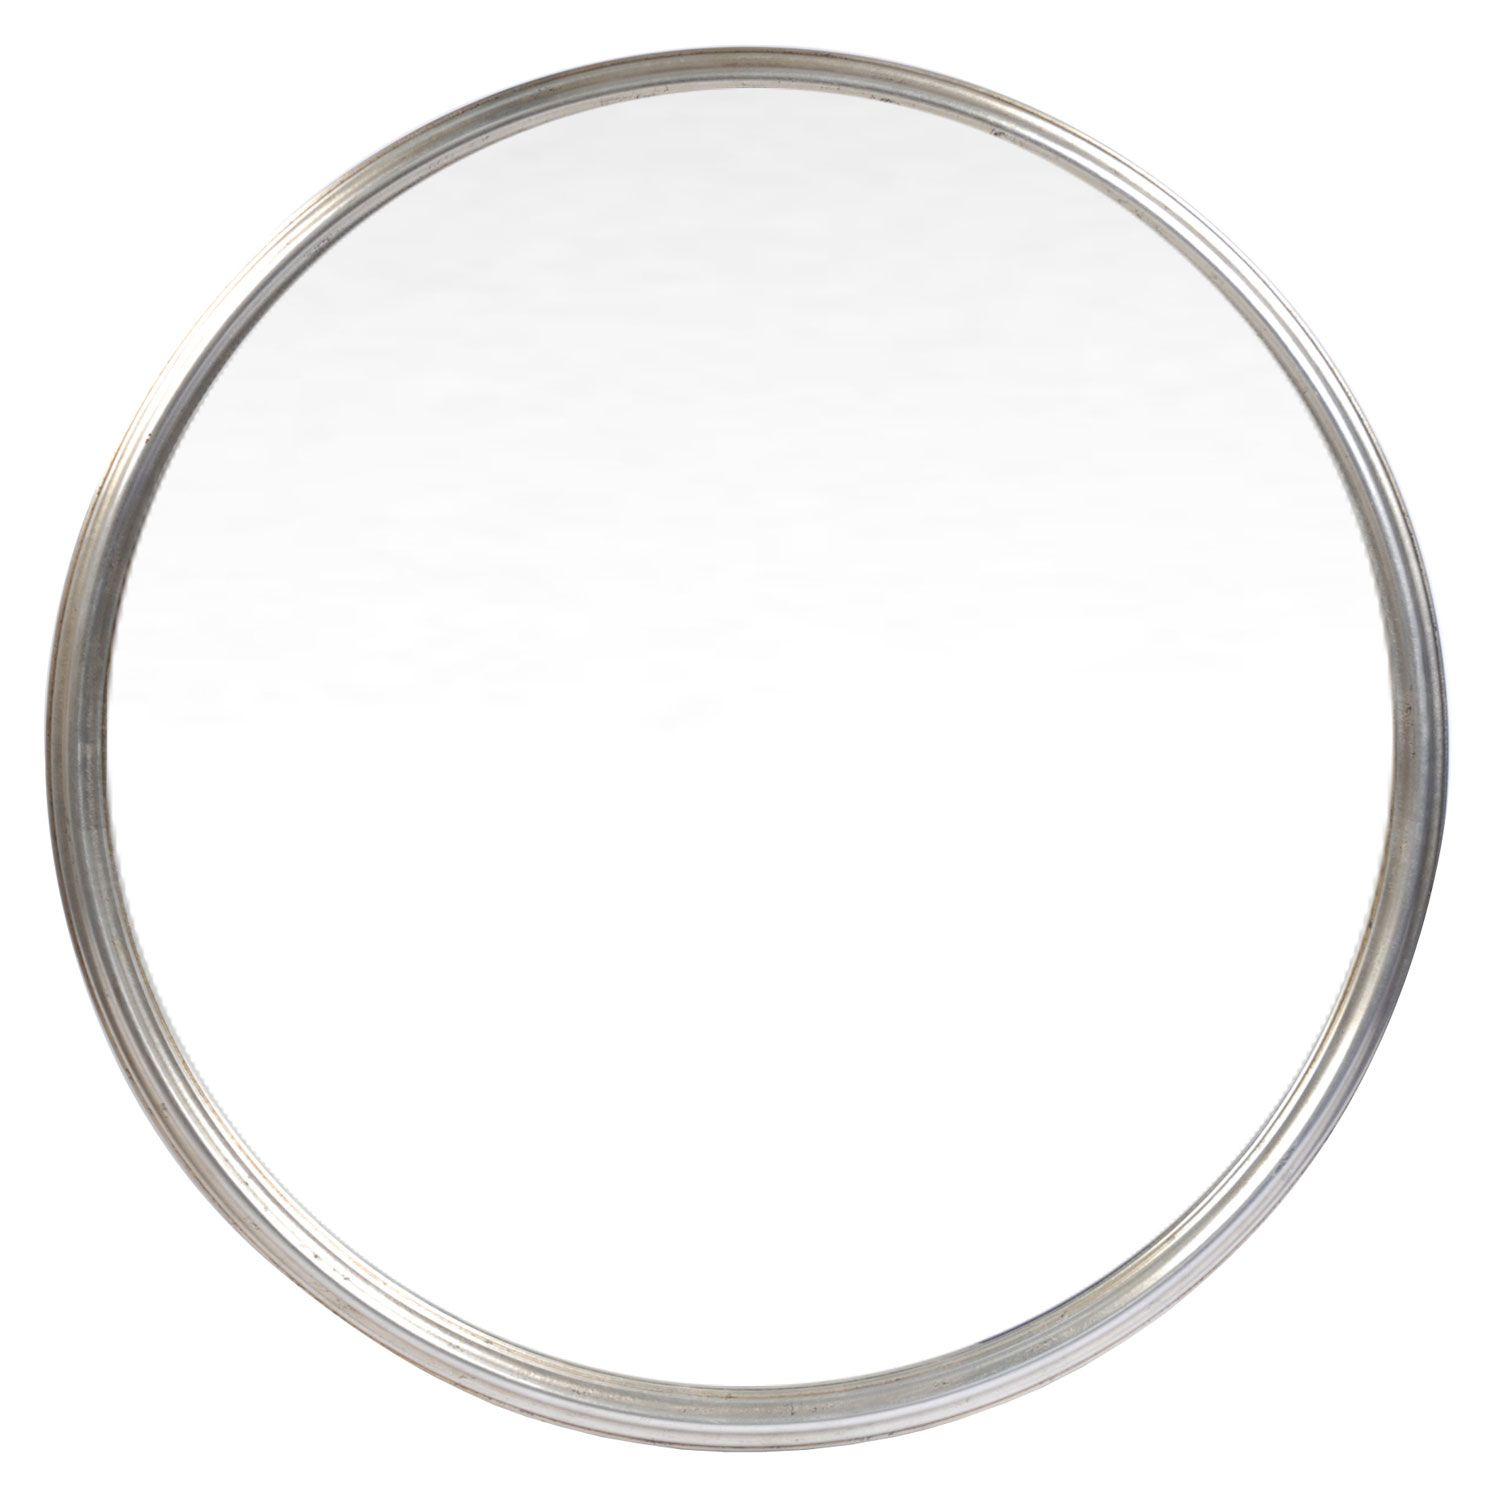 Bathroom Mirror Konga classic silver round mirror | round mirrors | mirrors | home decor